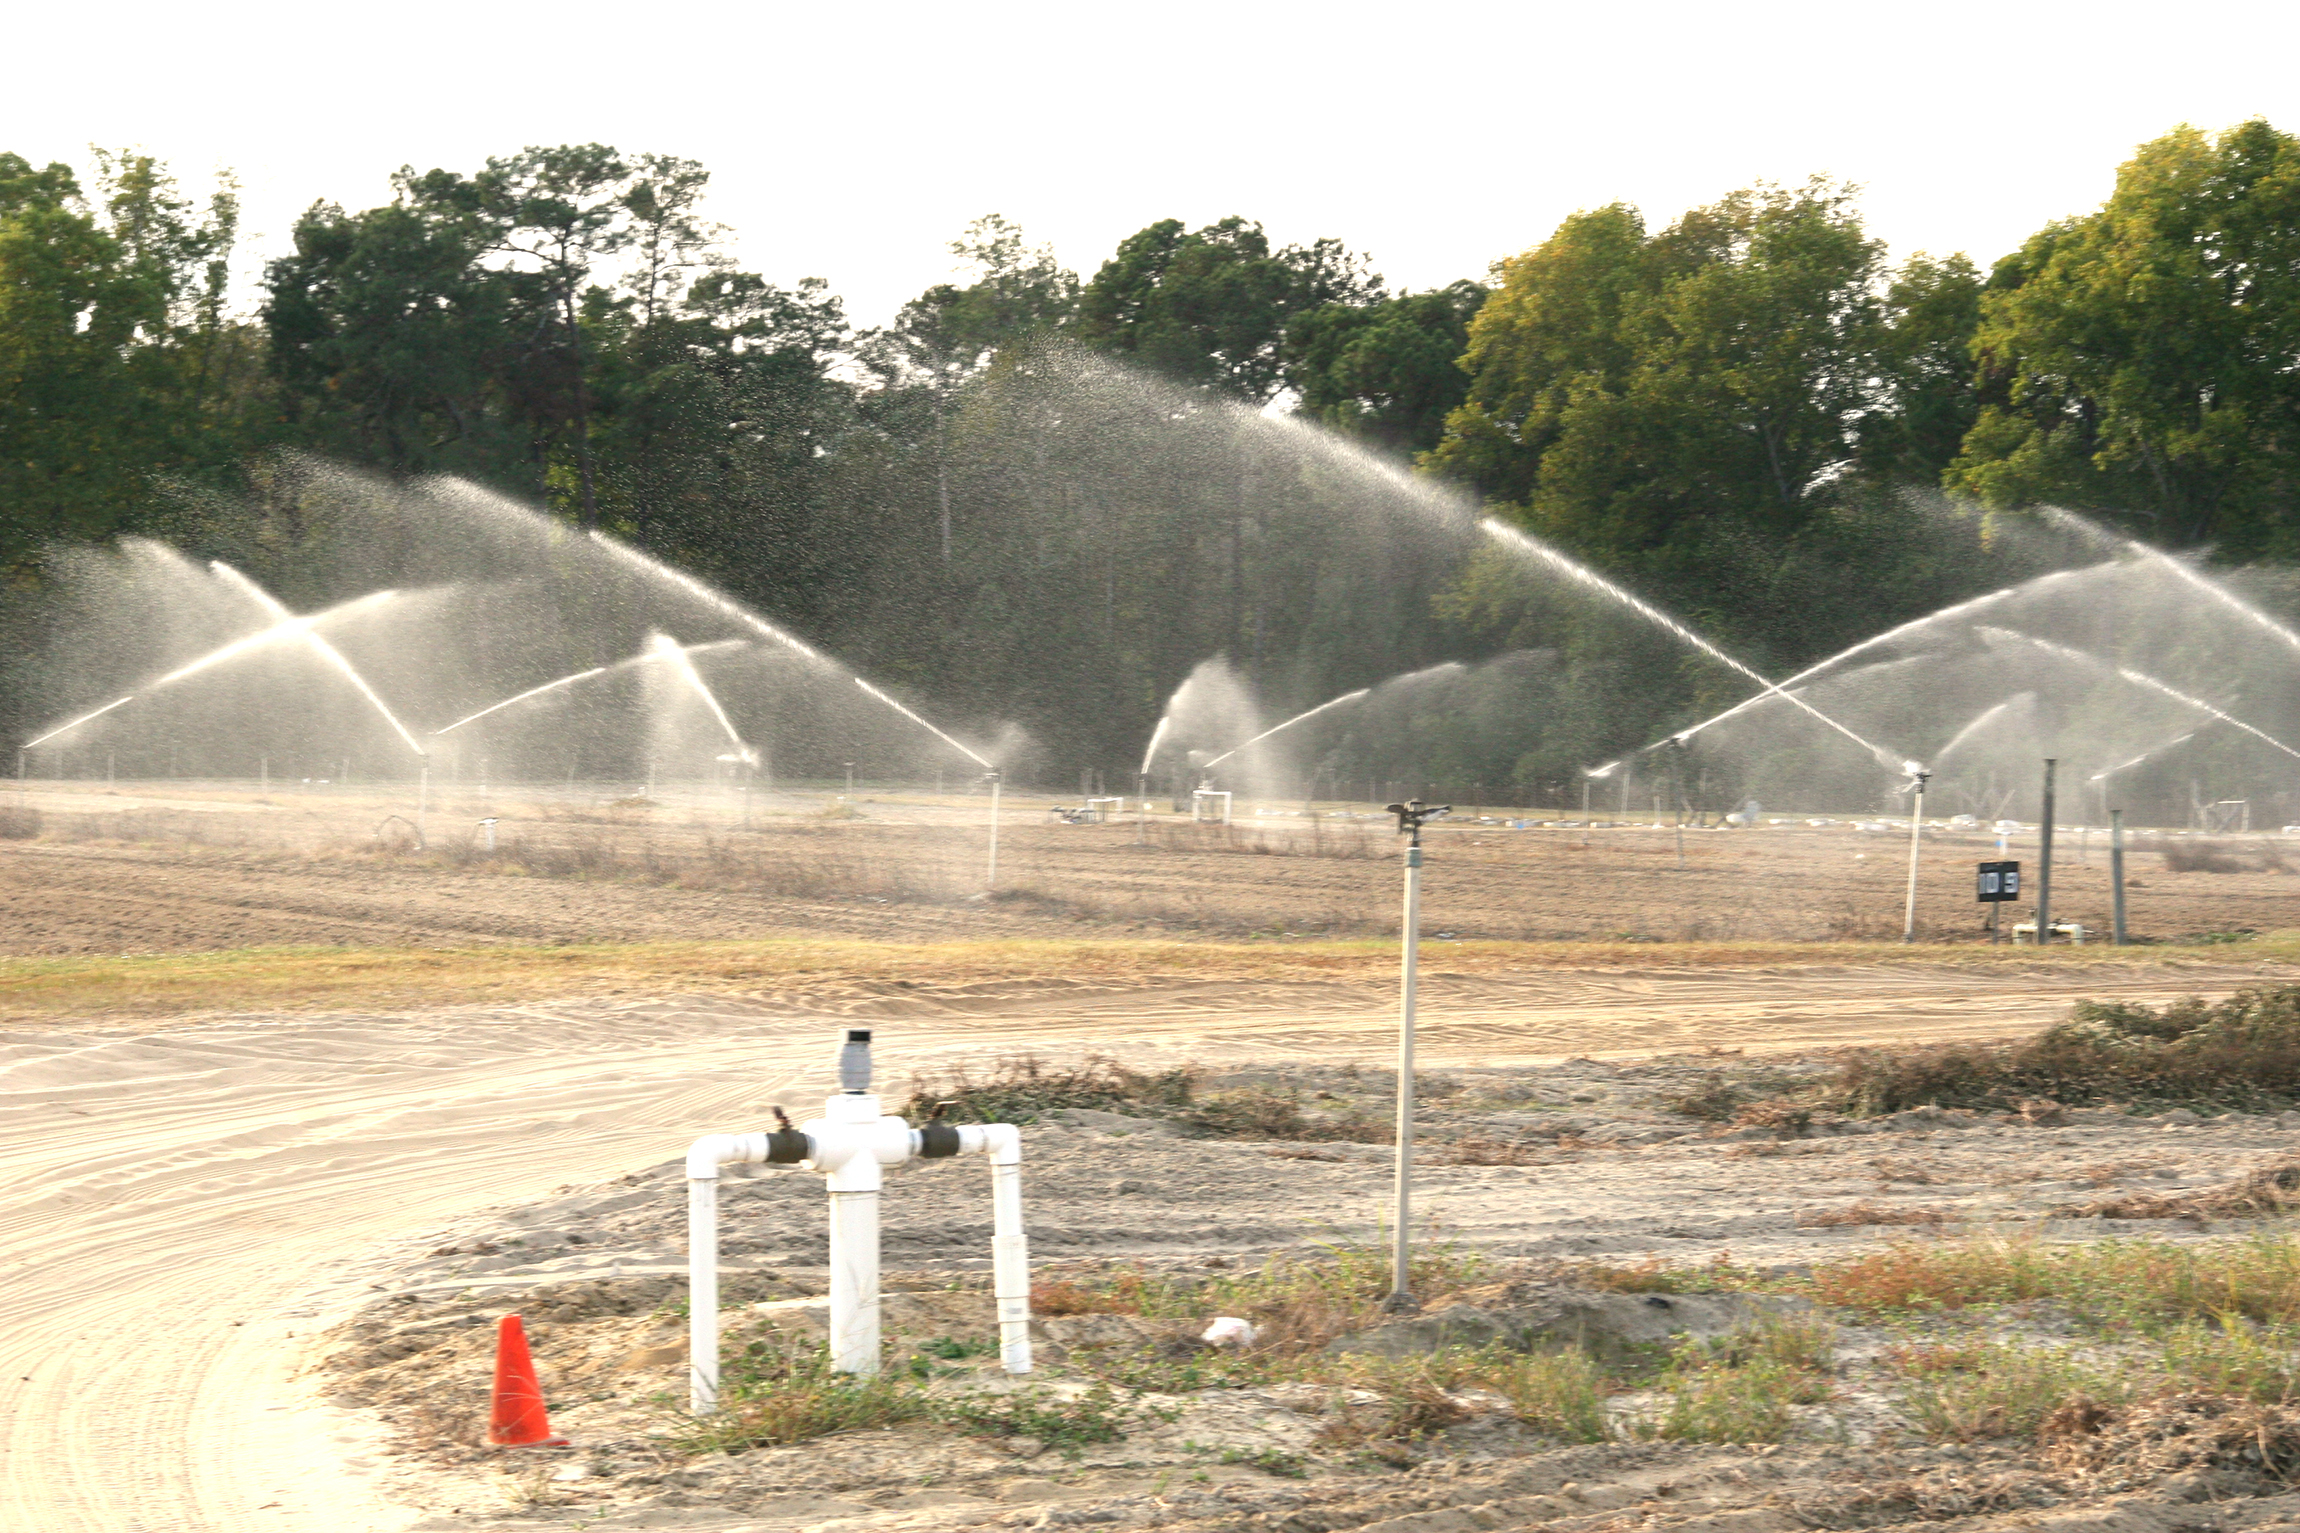 Irrigation pivots at work on the UGA Tifton Campus.